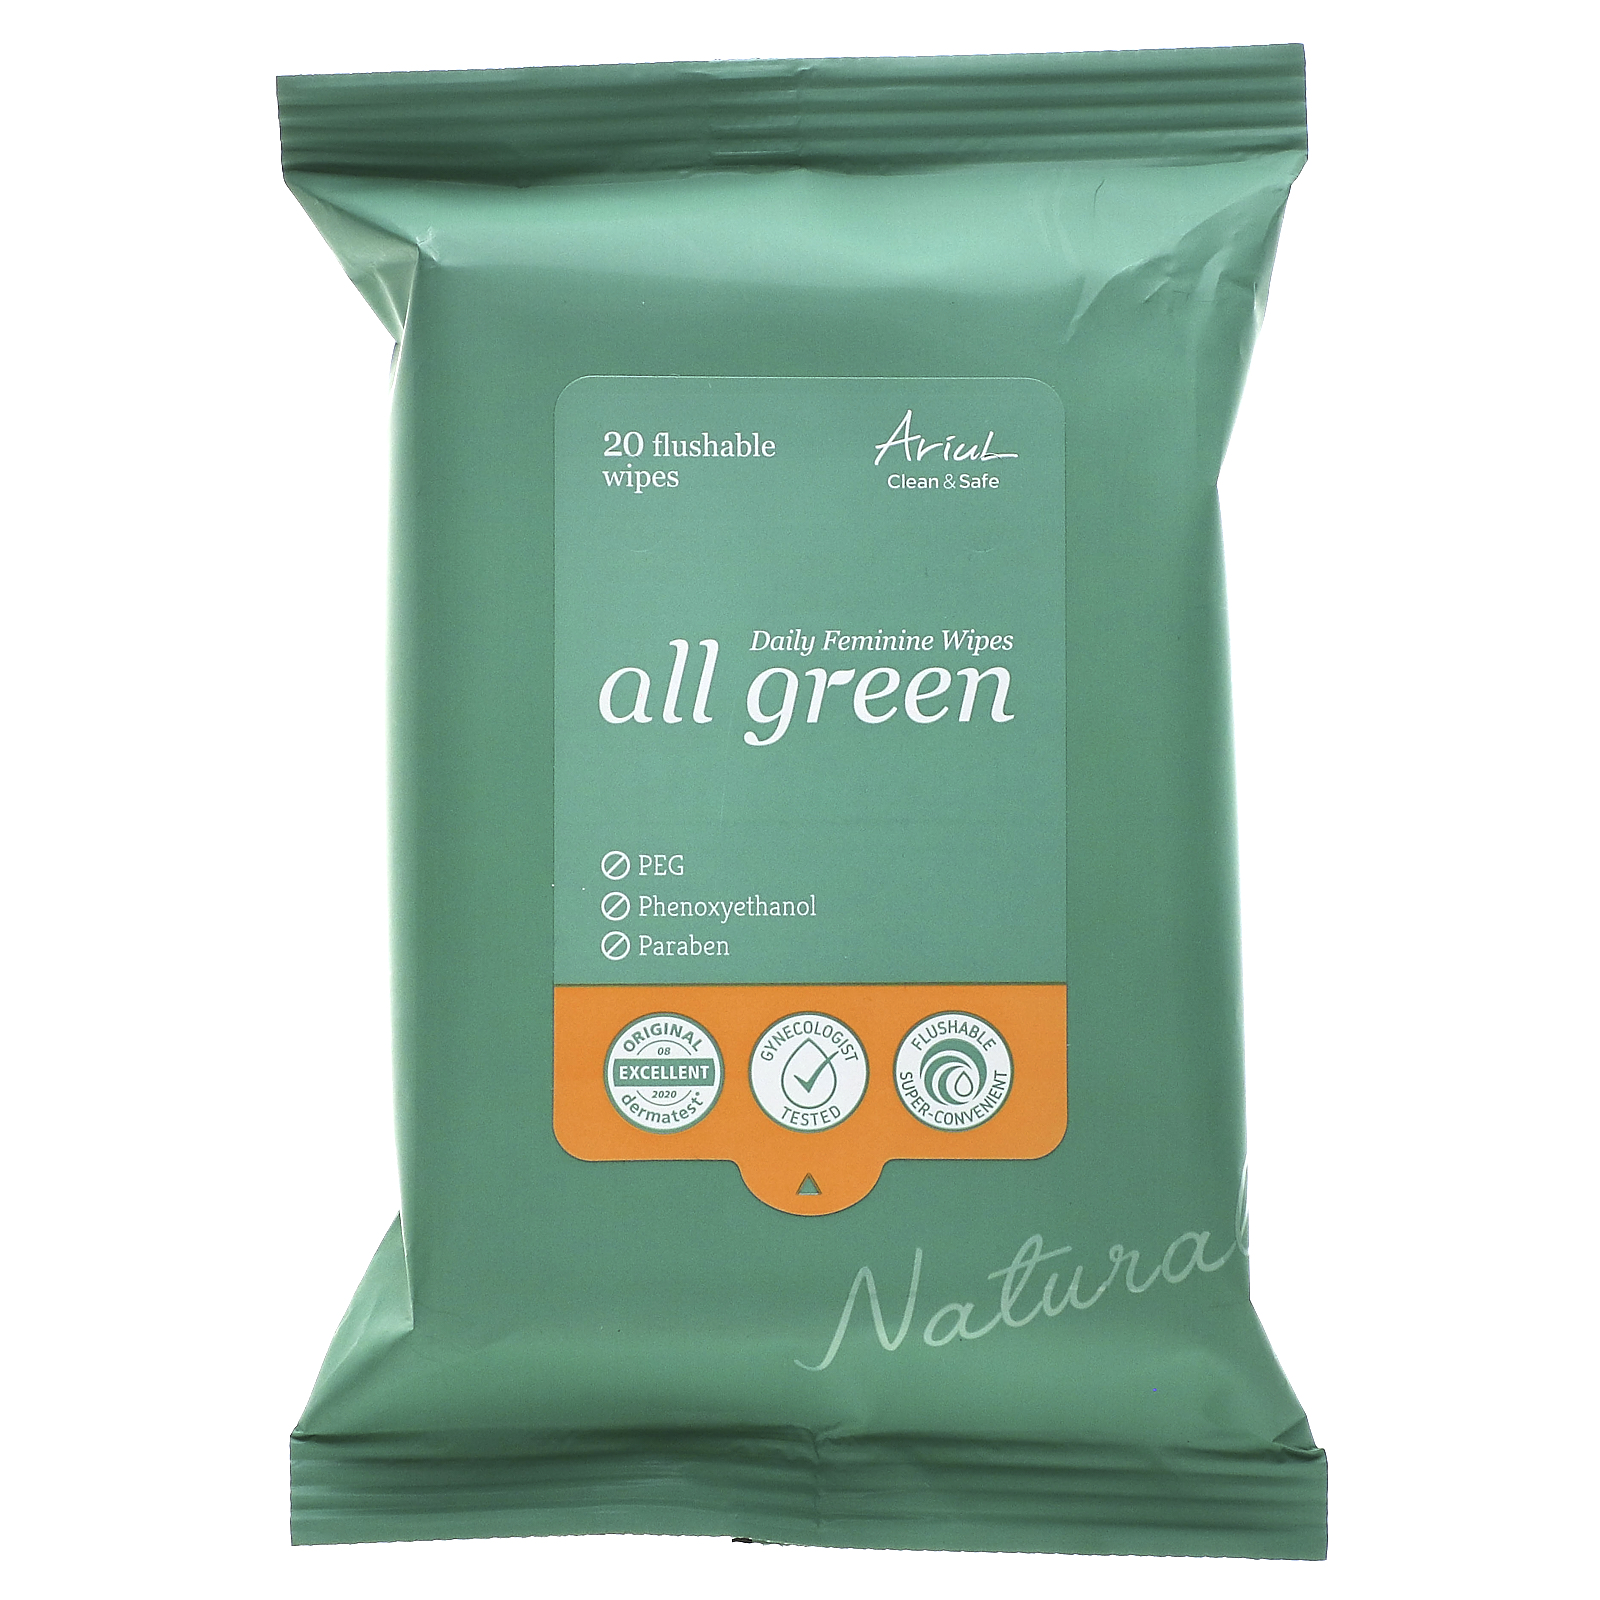 Ariul, All Green, Daily Feminine Wipes,  20 Flushable Wipes